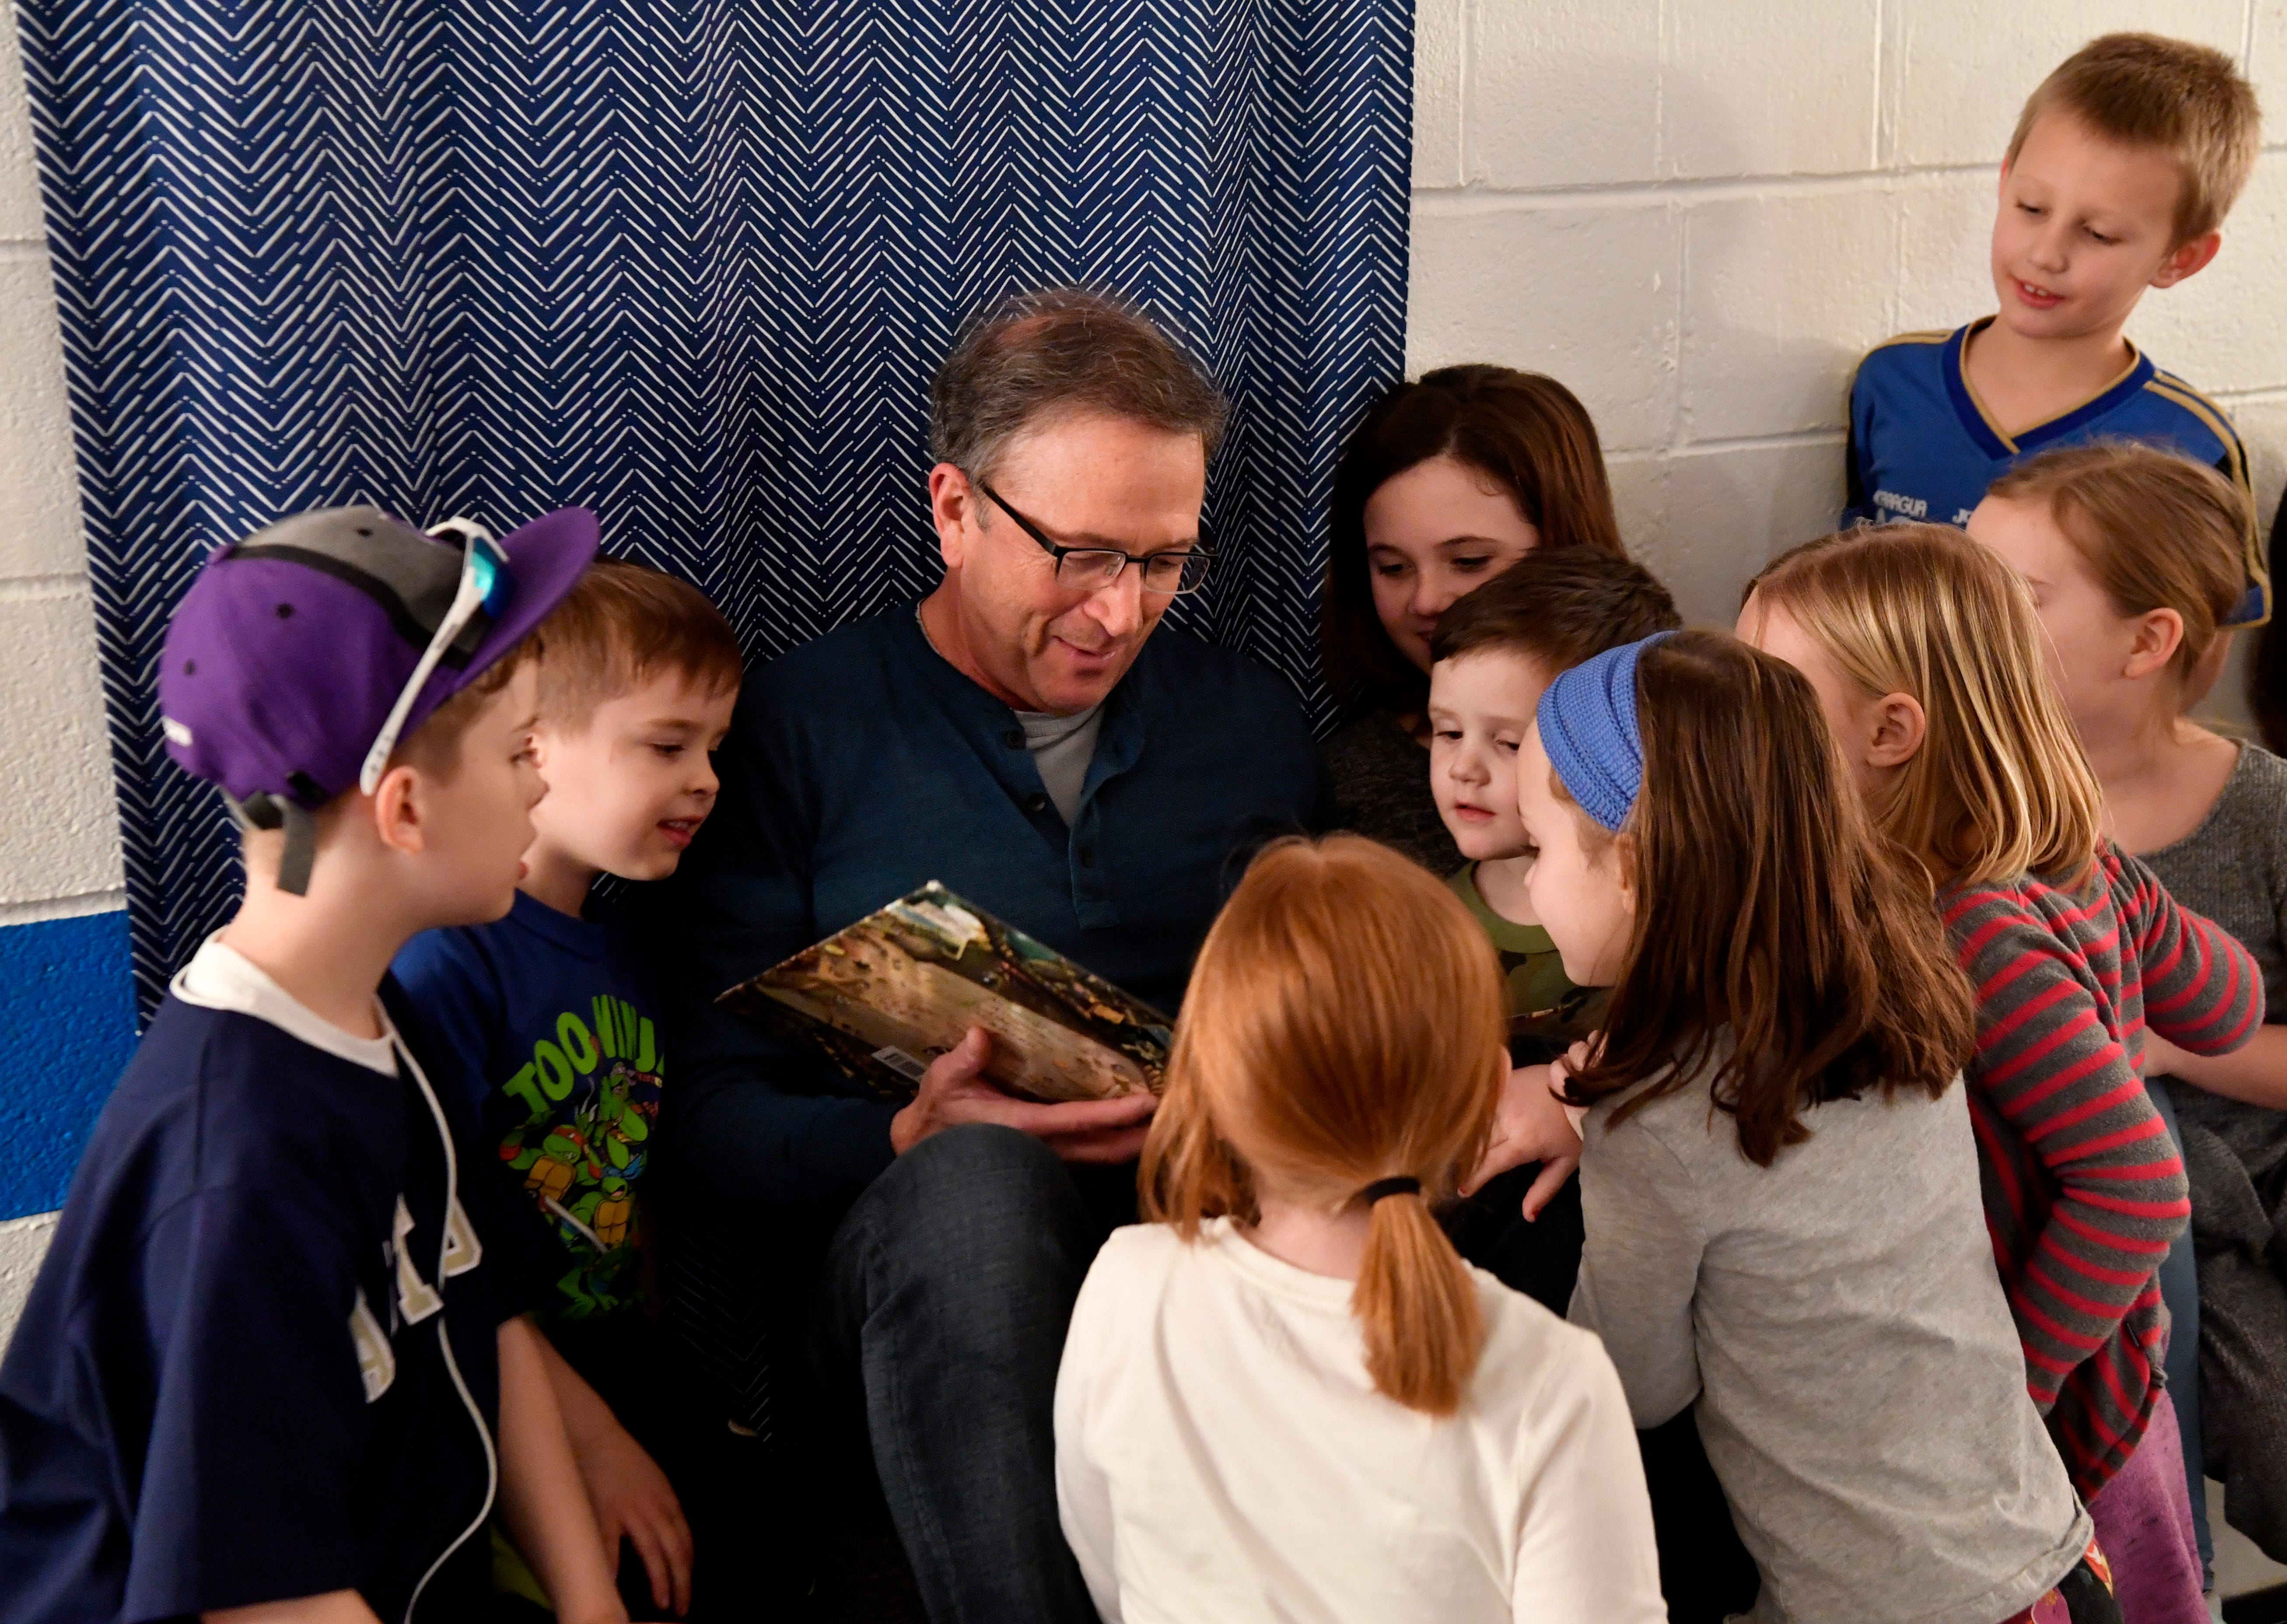 Mike Cope is surrounded by children at Highland Church of Christ. He was lead minister there from 1991 to 2009.